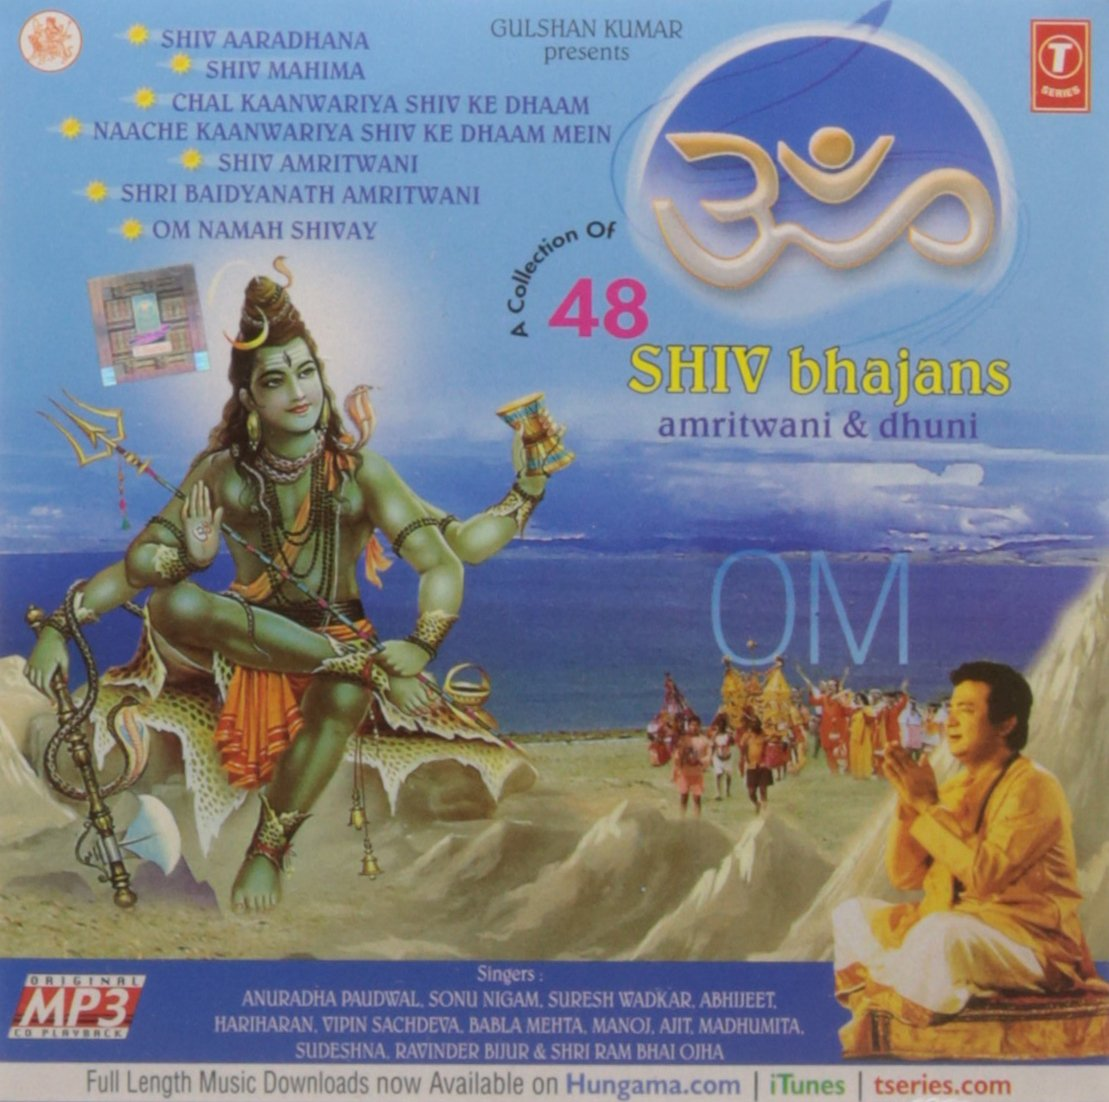 gulshan kumar best bhajan mp3 free download